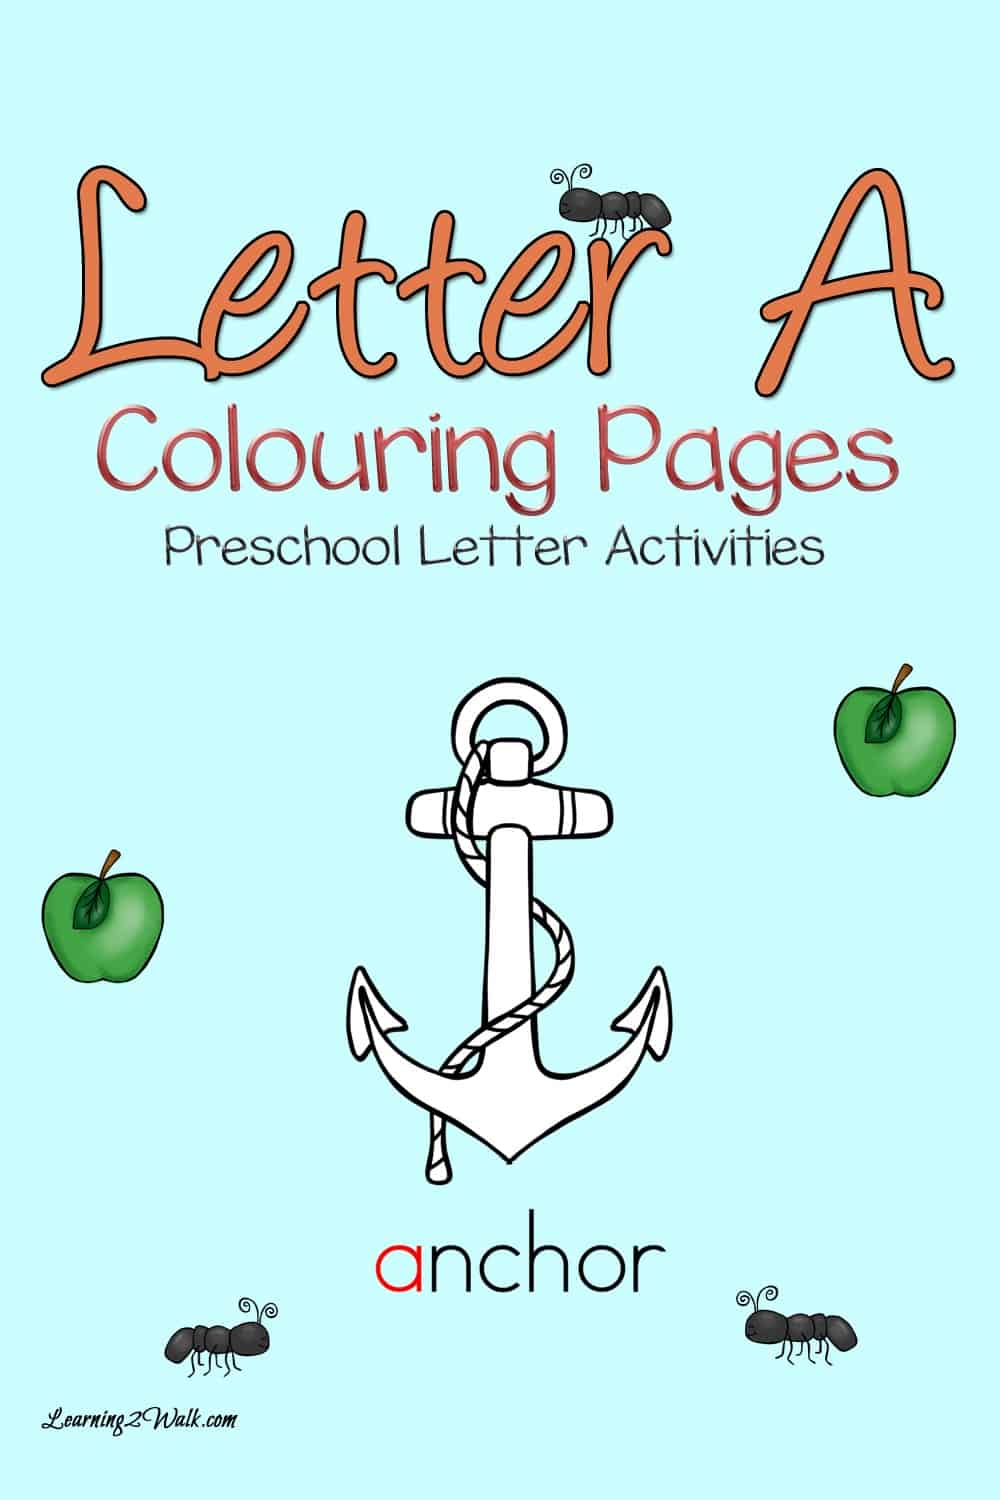 Working on preschool letters? Here is a set of free preschool letter a coloring pages to help with alphabet recognition.